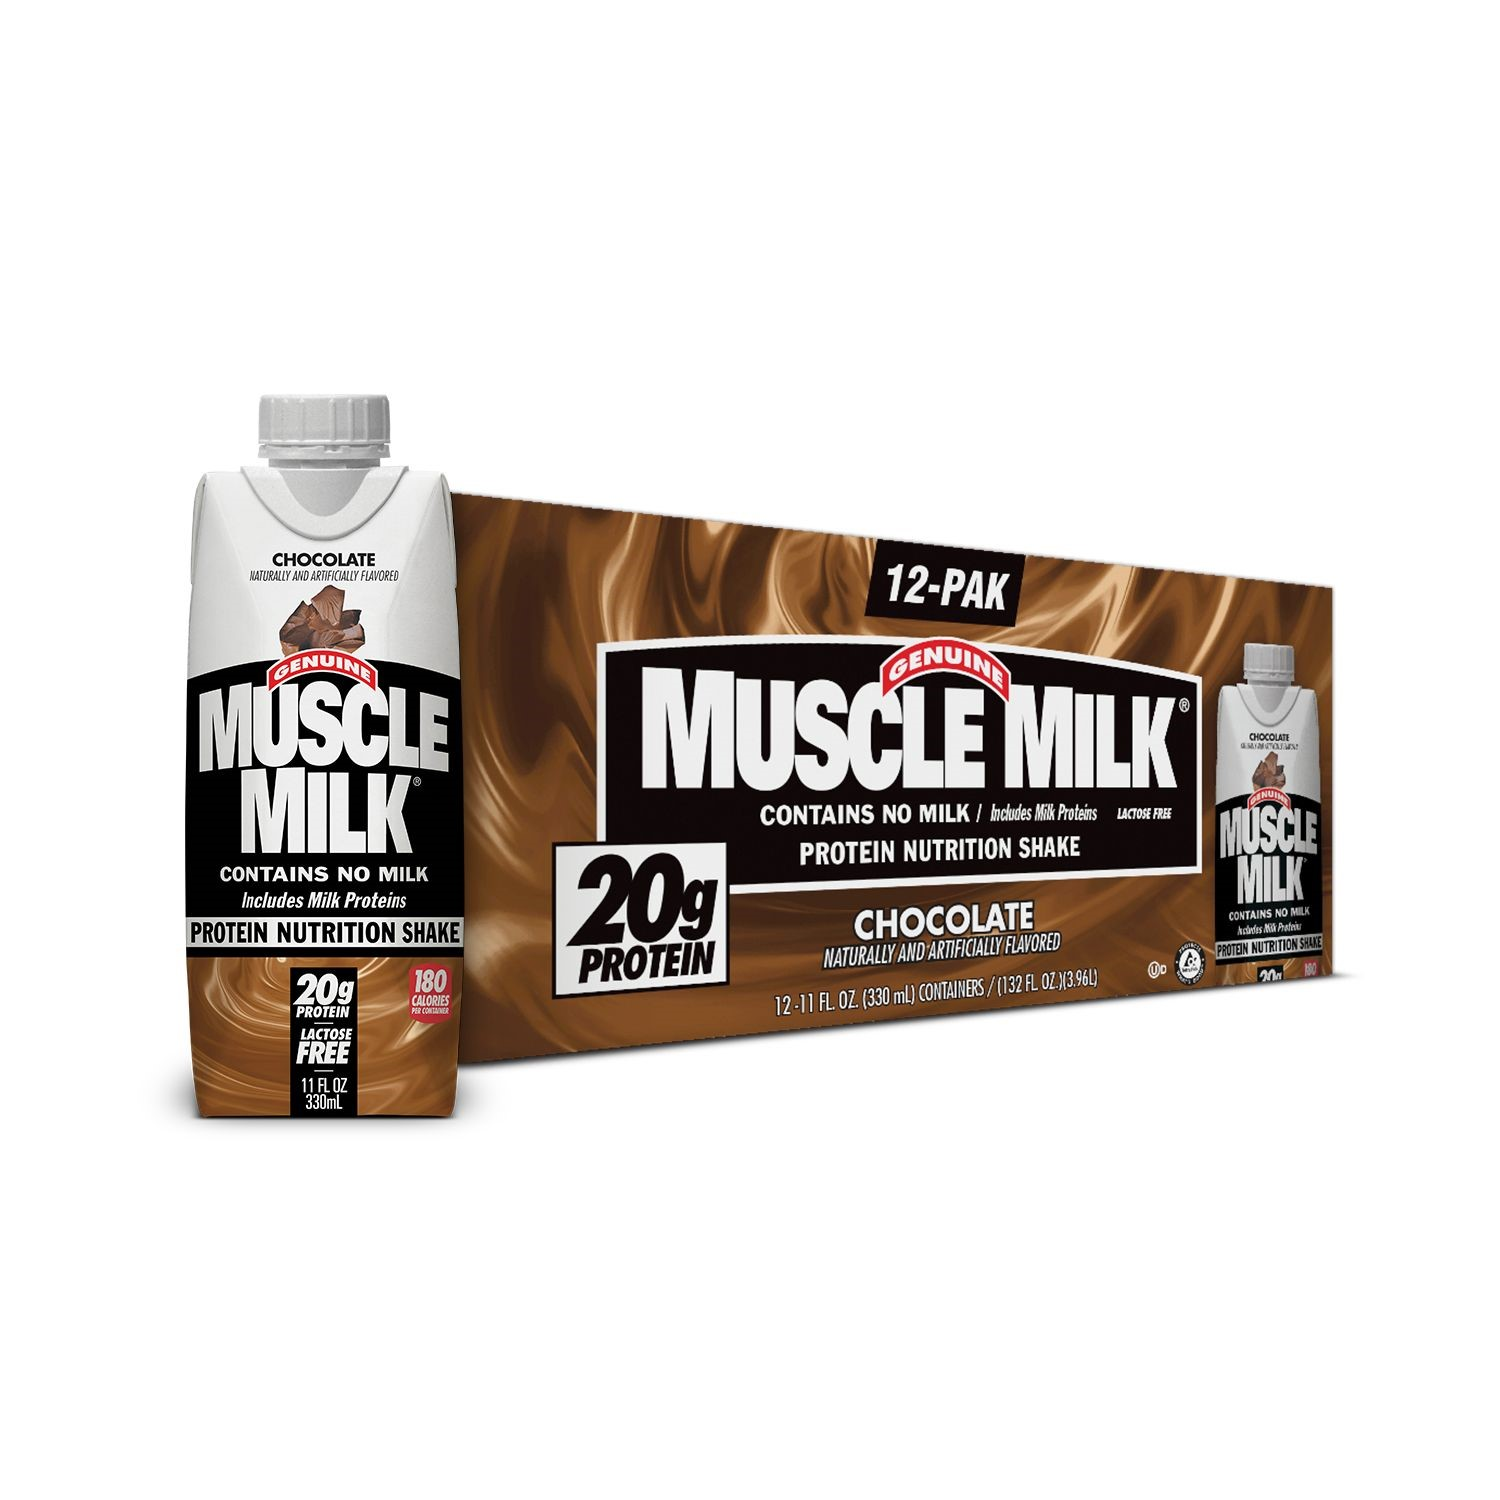 Muscle Milk Shake, 20 Grams of Protein, Chocolate, 11 Oz, 12 Ct